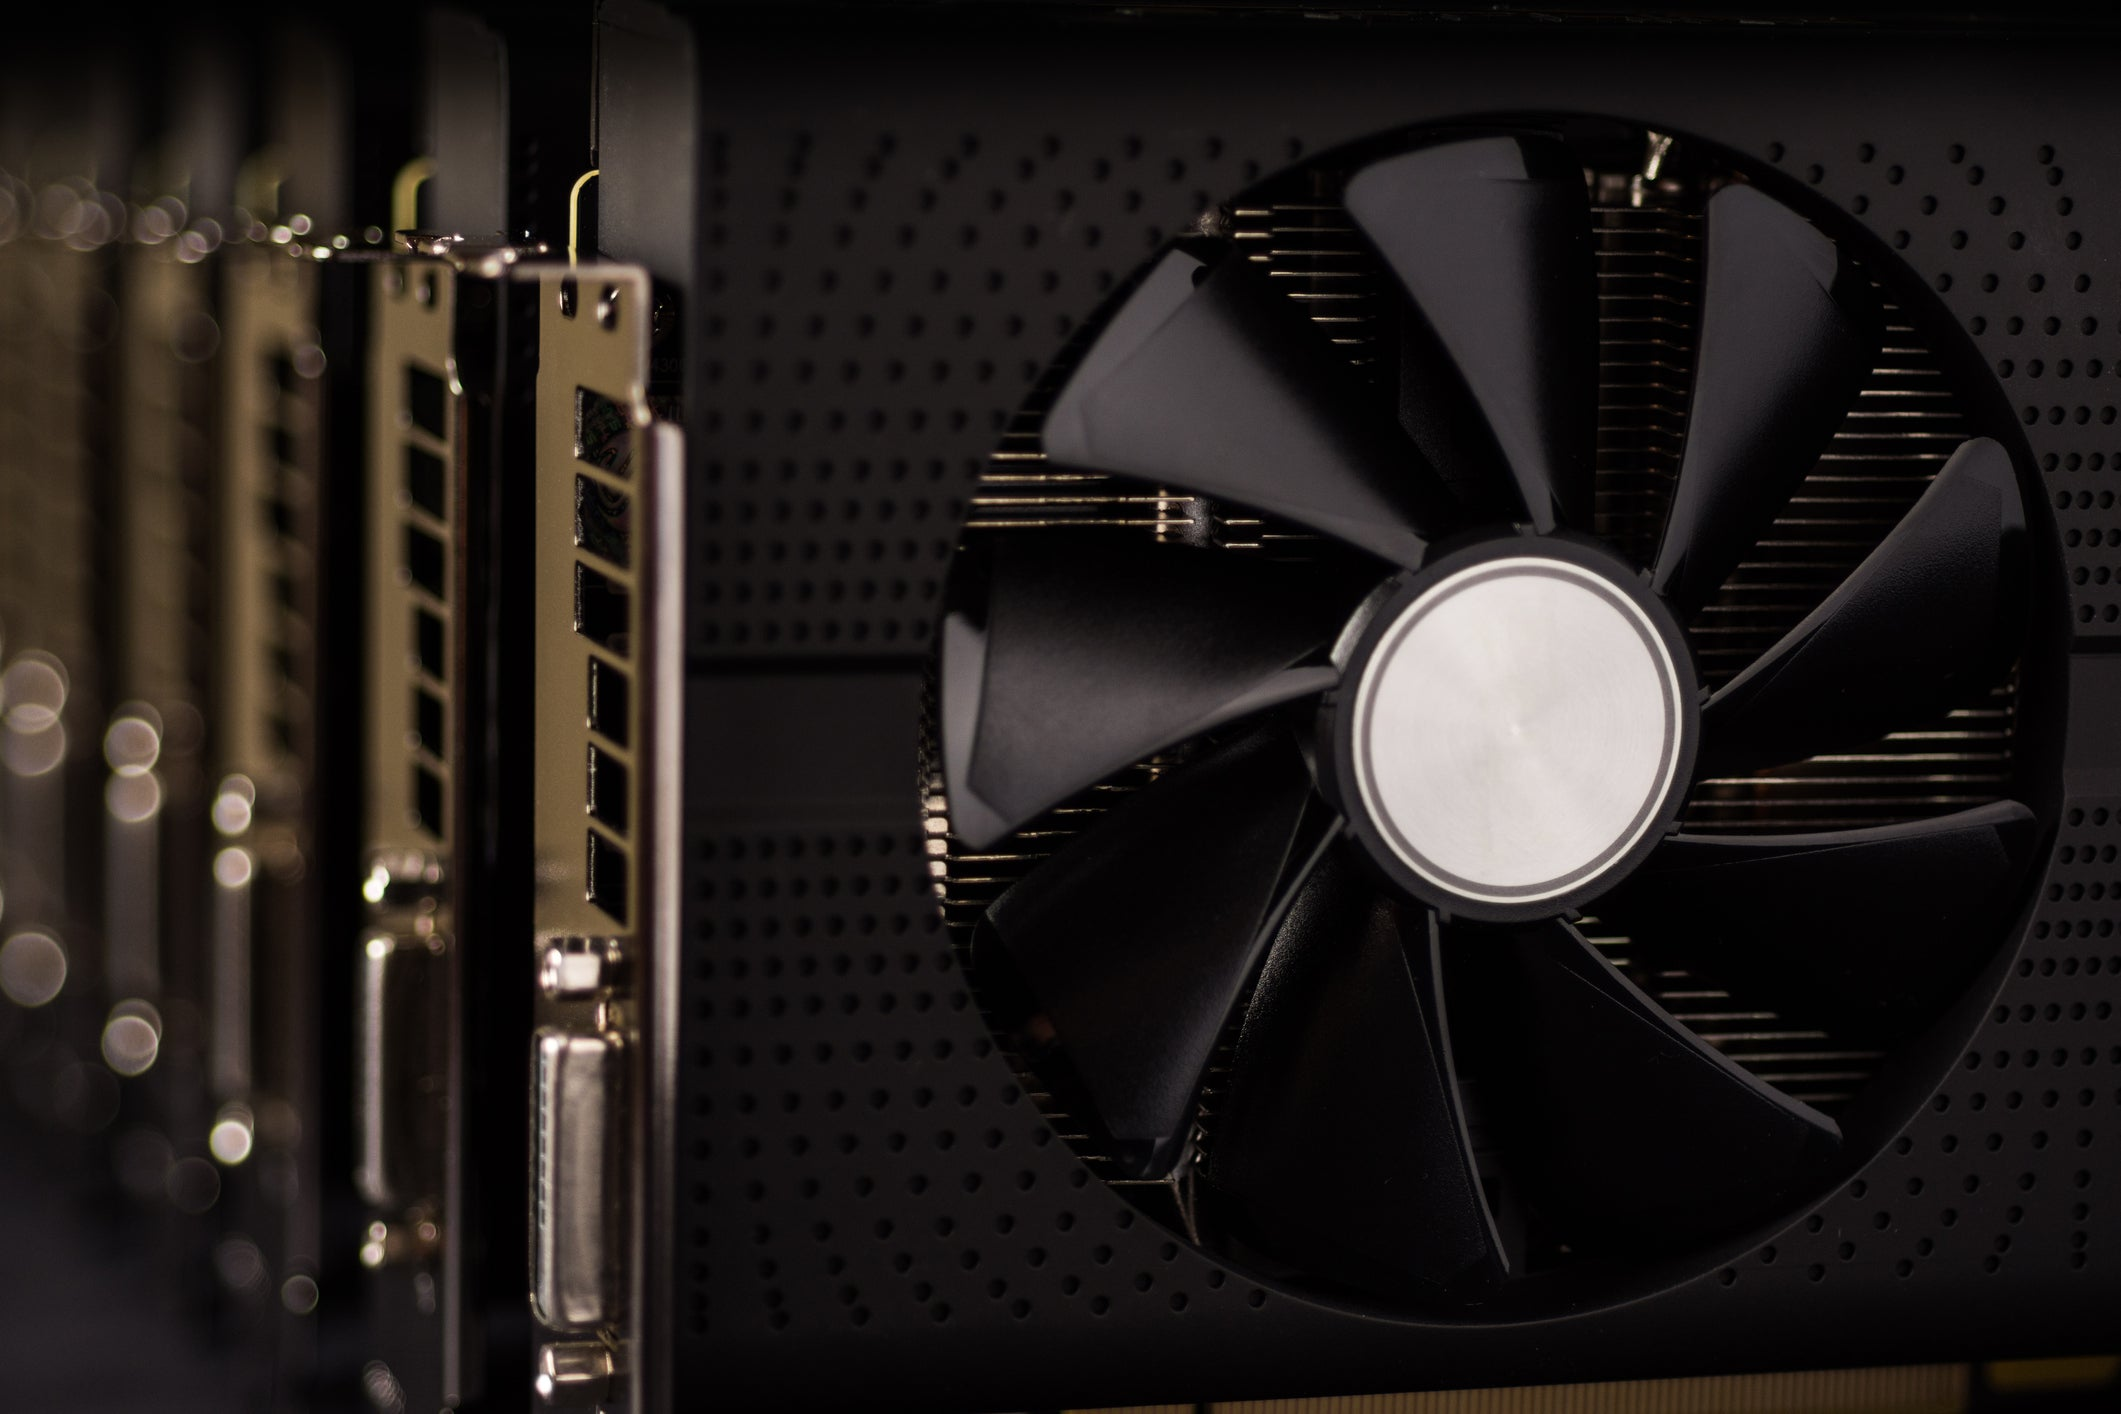 are amd server gpus good for cryptocurrency